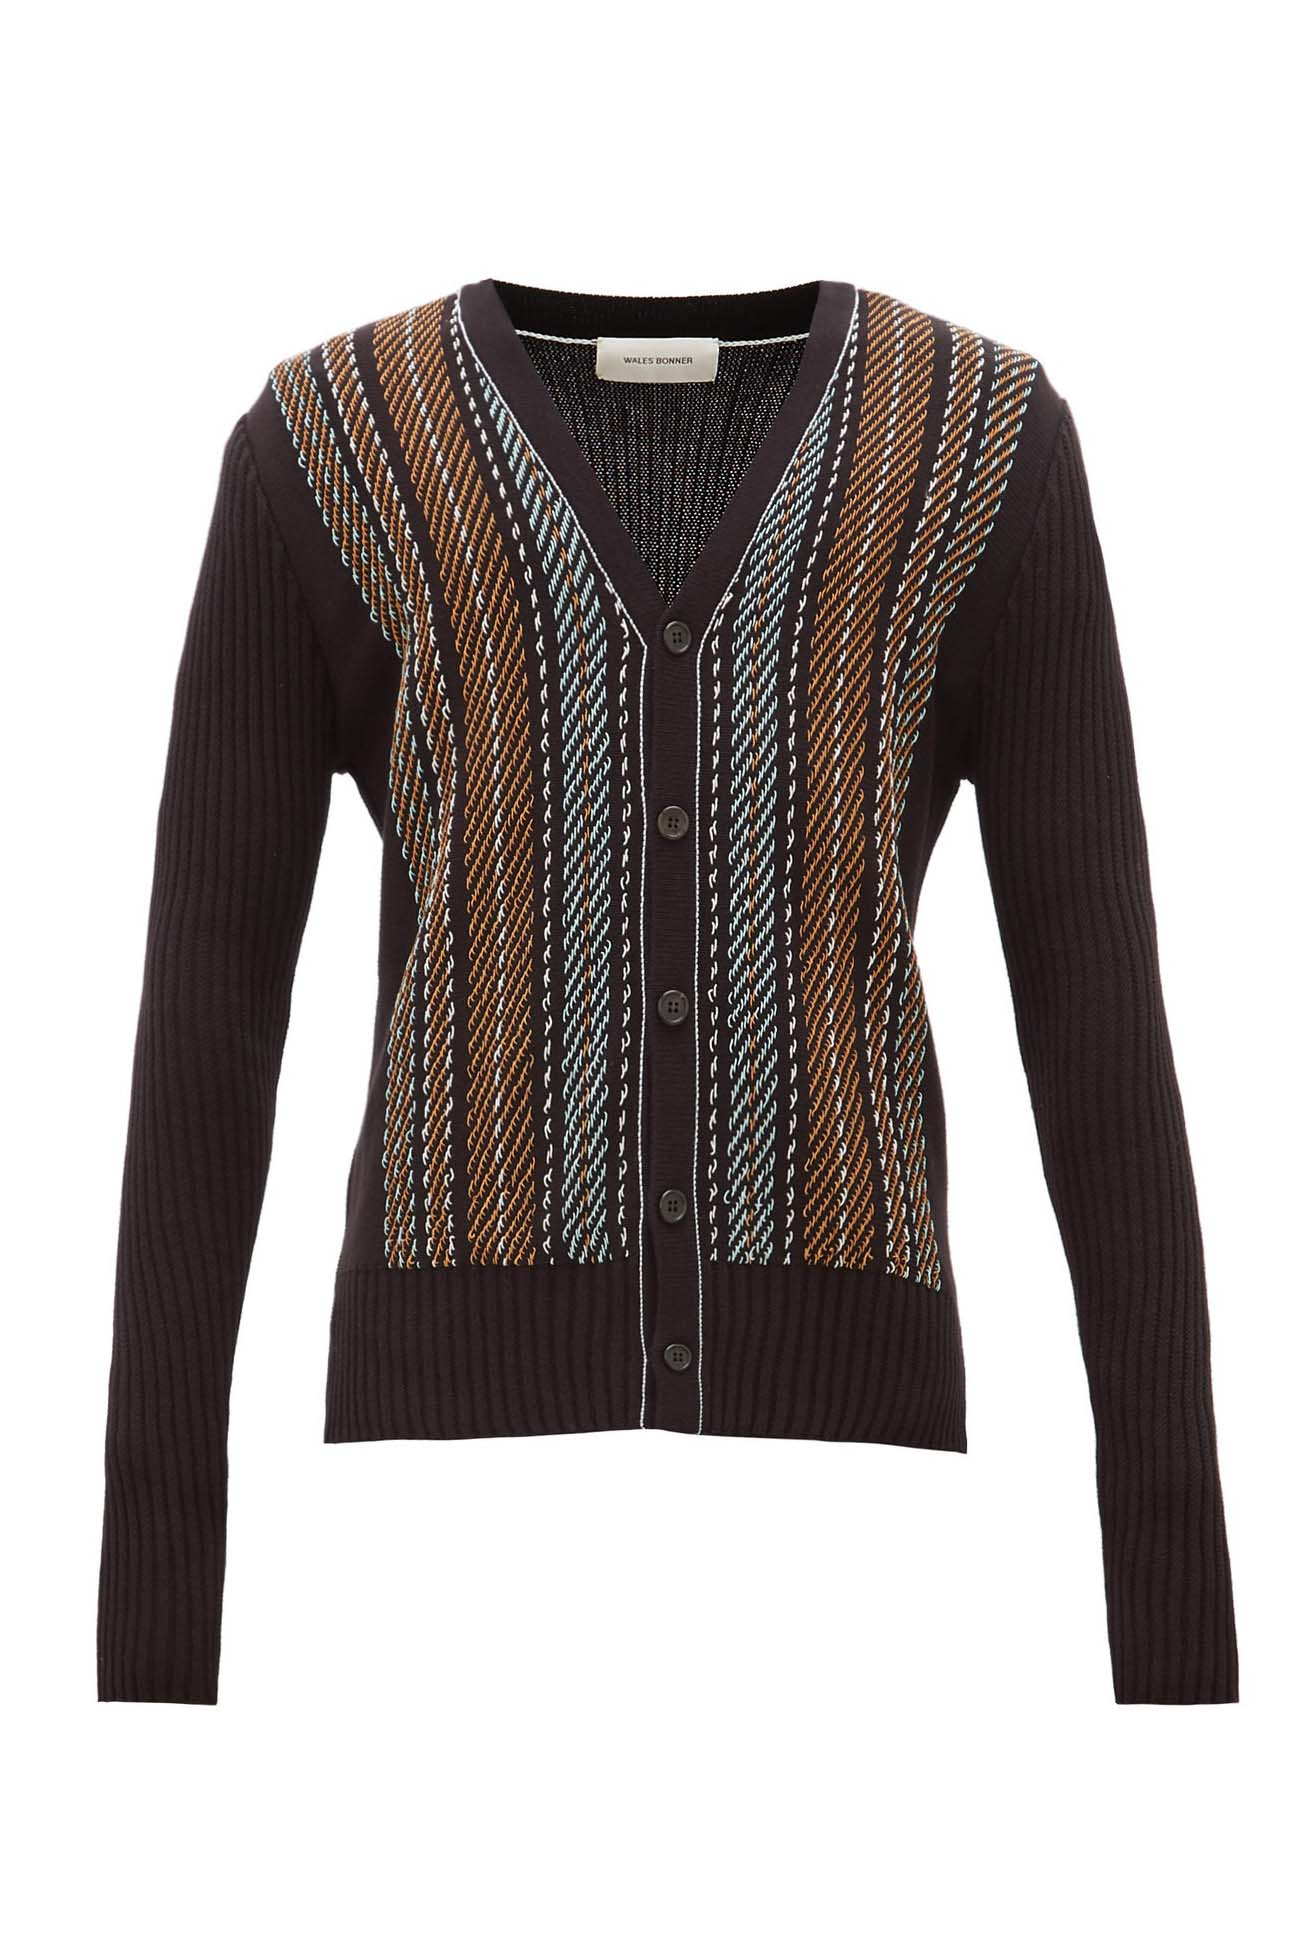 Oraa Embroidered Cardigan